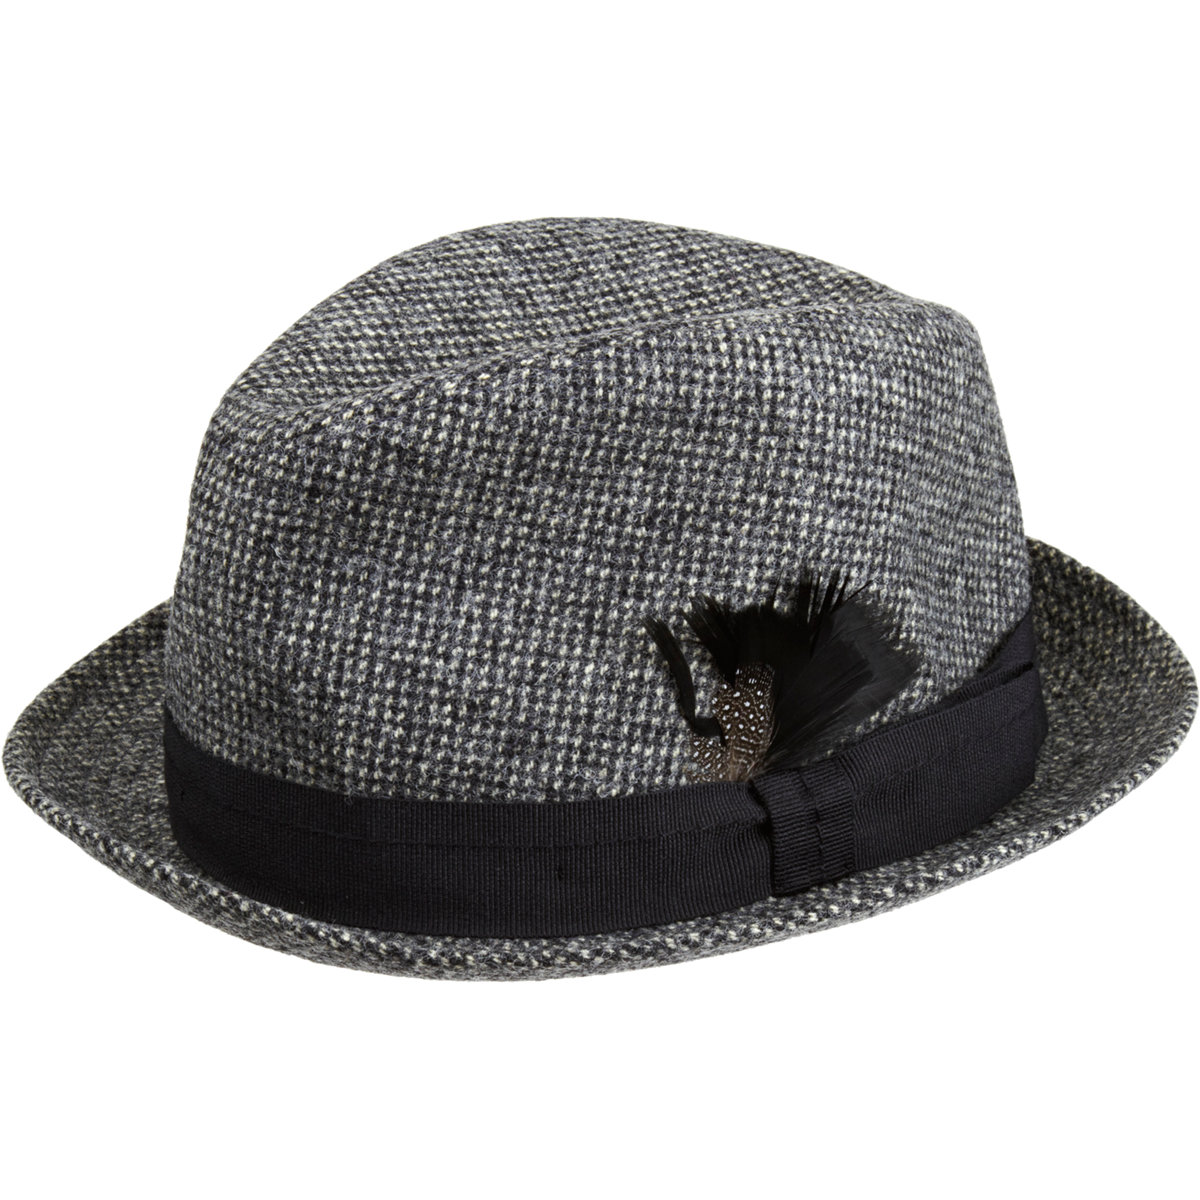 Paul Smith Tweed Trilby Hat in Black for Men - Lyst 9f0d02fcf1e8